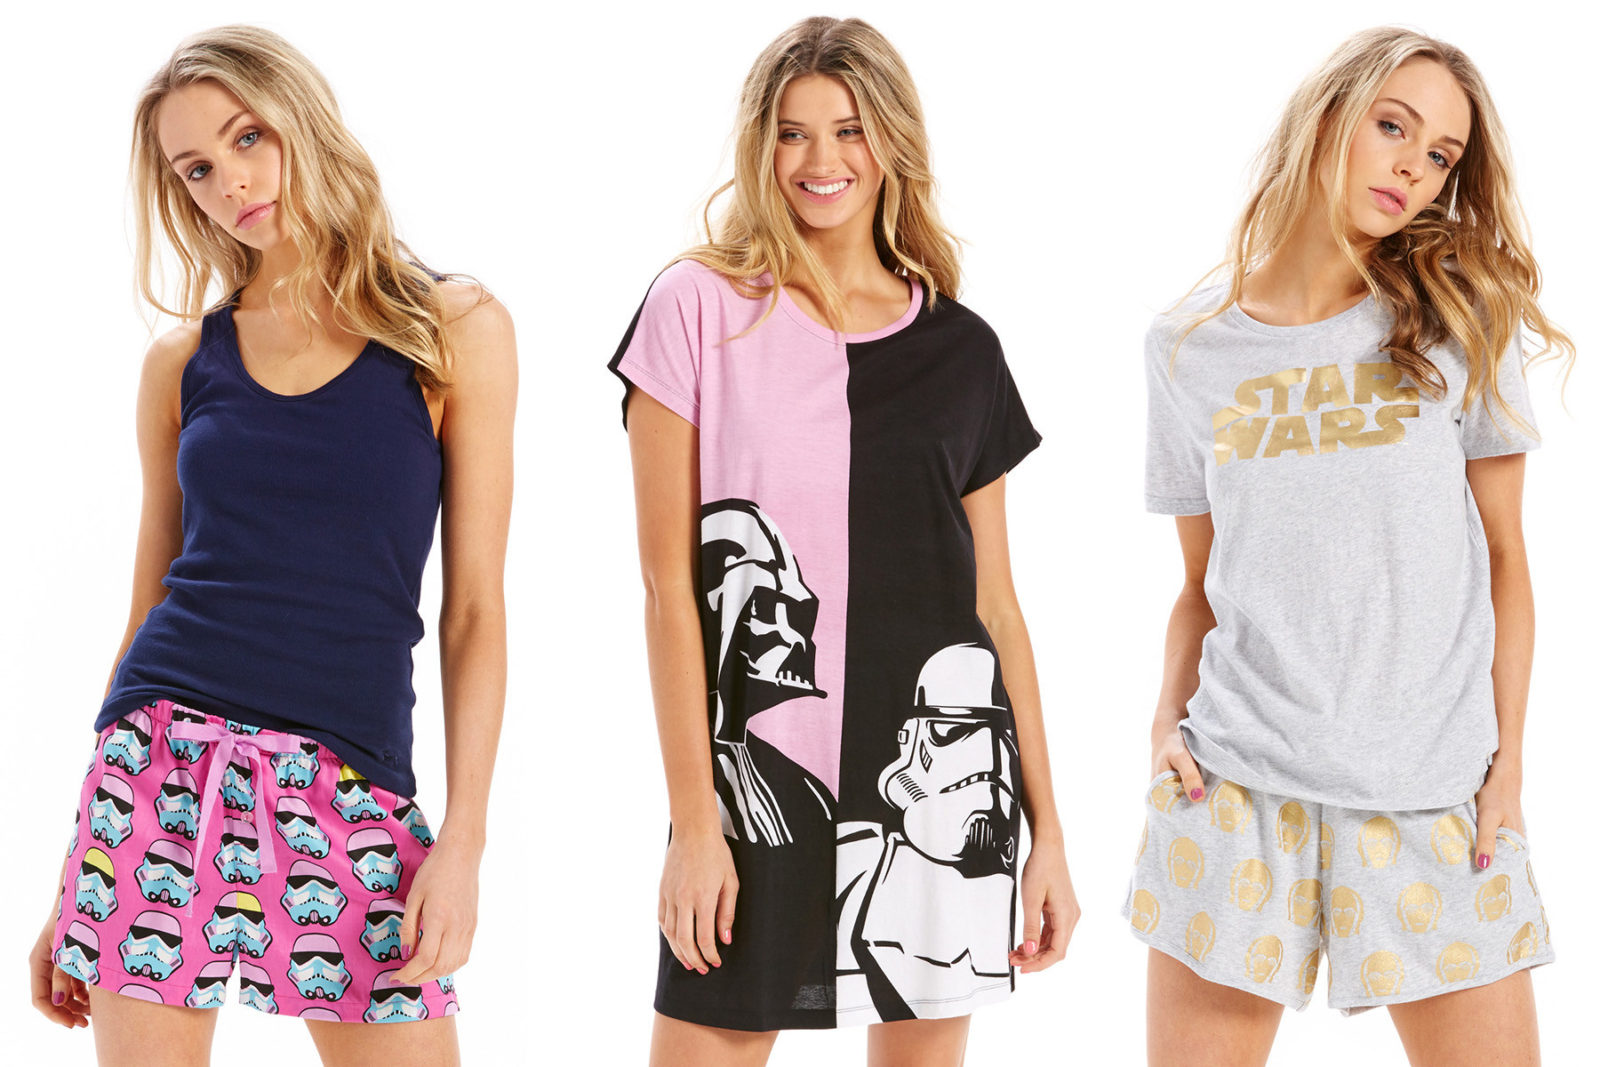 Women's Peter Alexander x Star Wars sleepwear